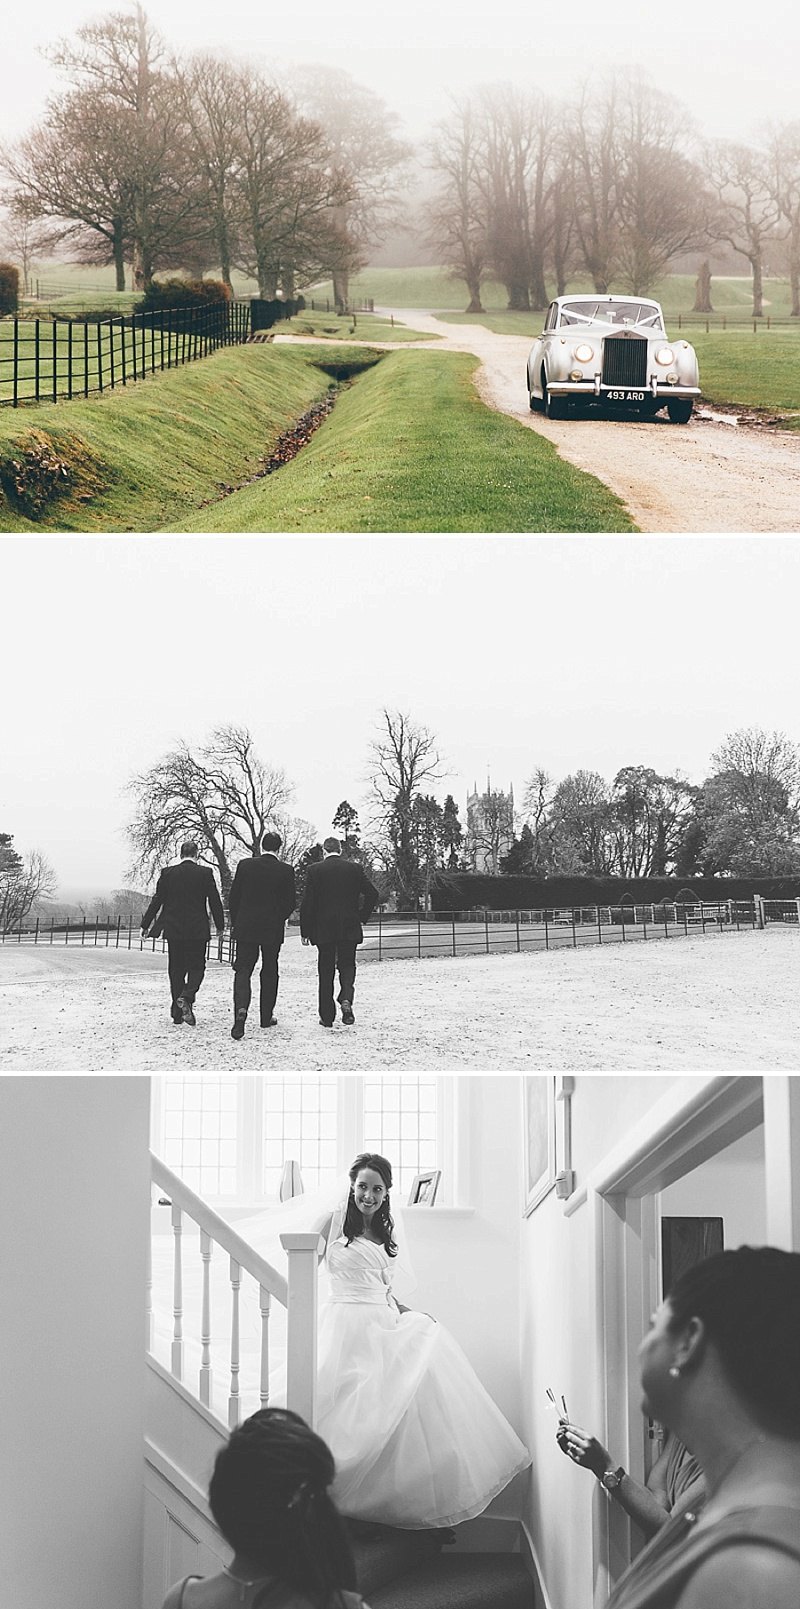 Elegant Wedding At Lulworth Castle In Dorset With Bride In Heidi By Sassi Holford And Bridesmaids In Dessy With Accessories From Glitzy Secrets And Groom In Suit By Austin Reed With Images From Dorset Wedding Photographer Paul Underhill 2